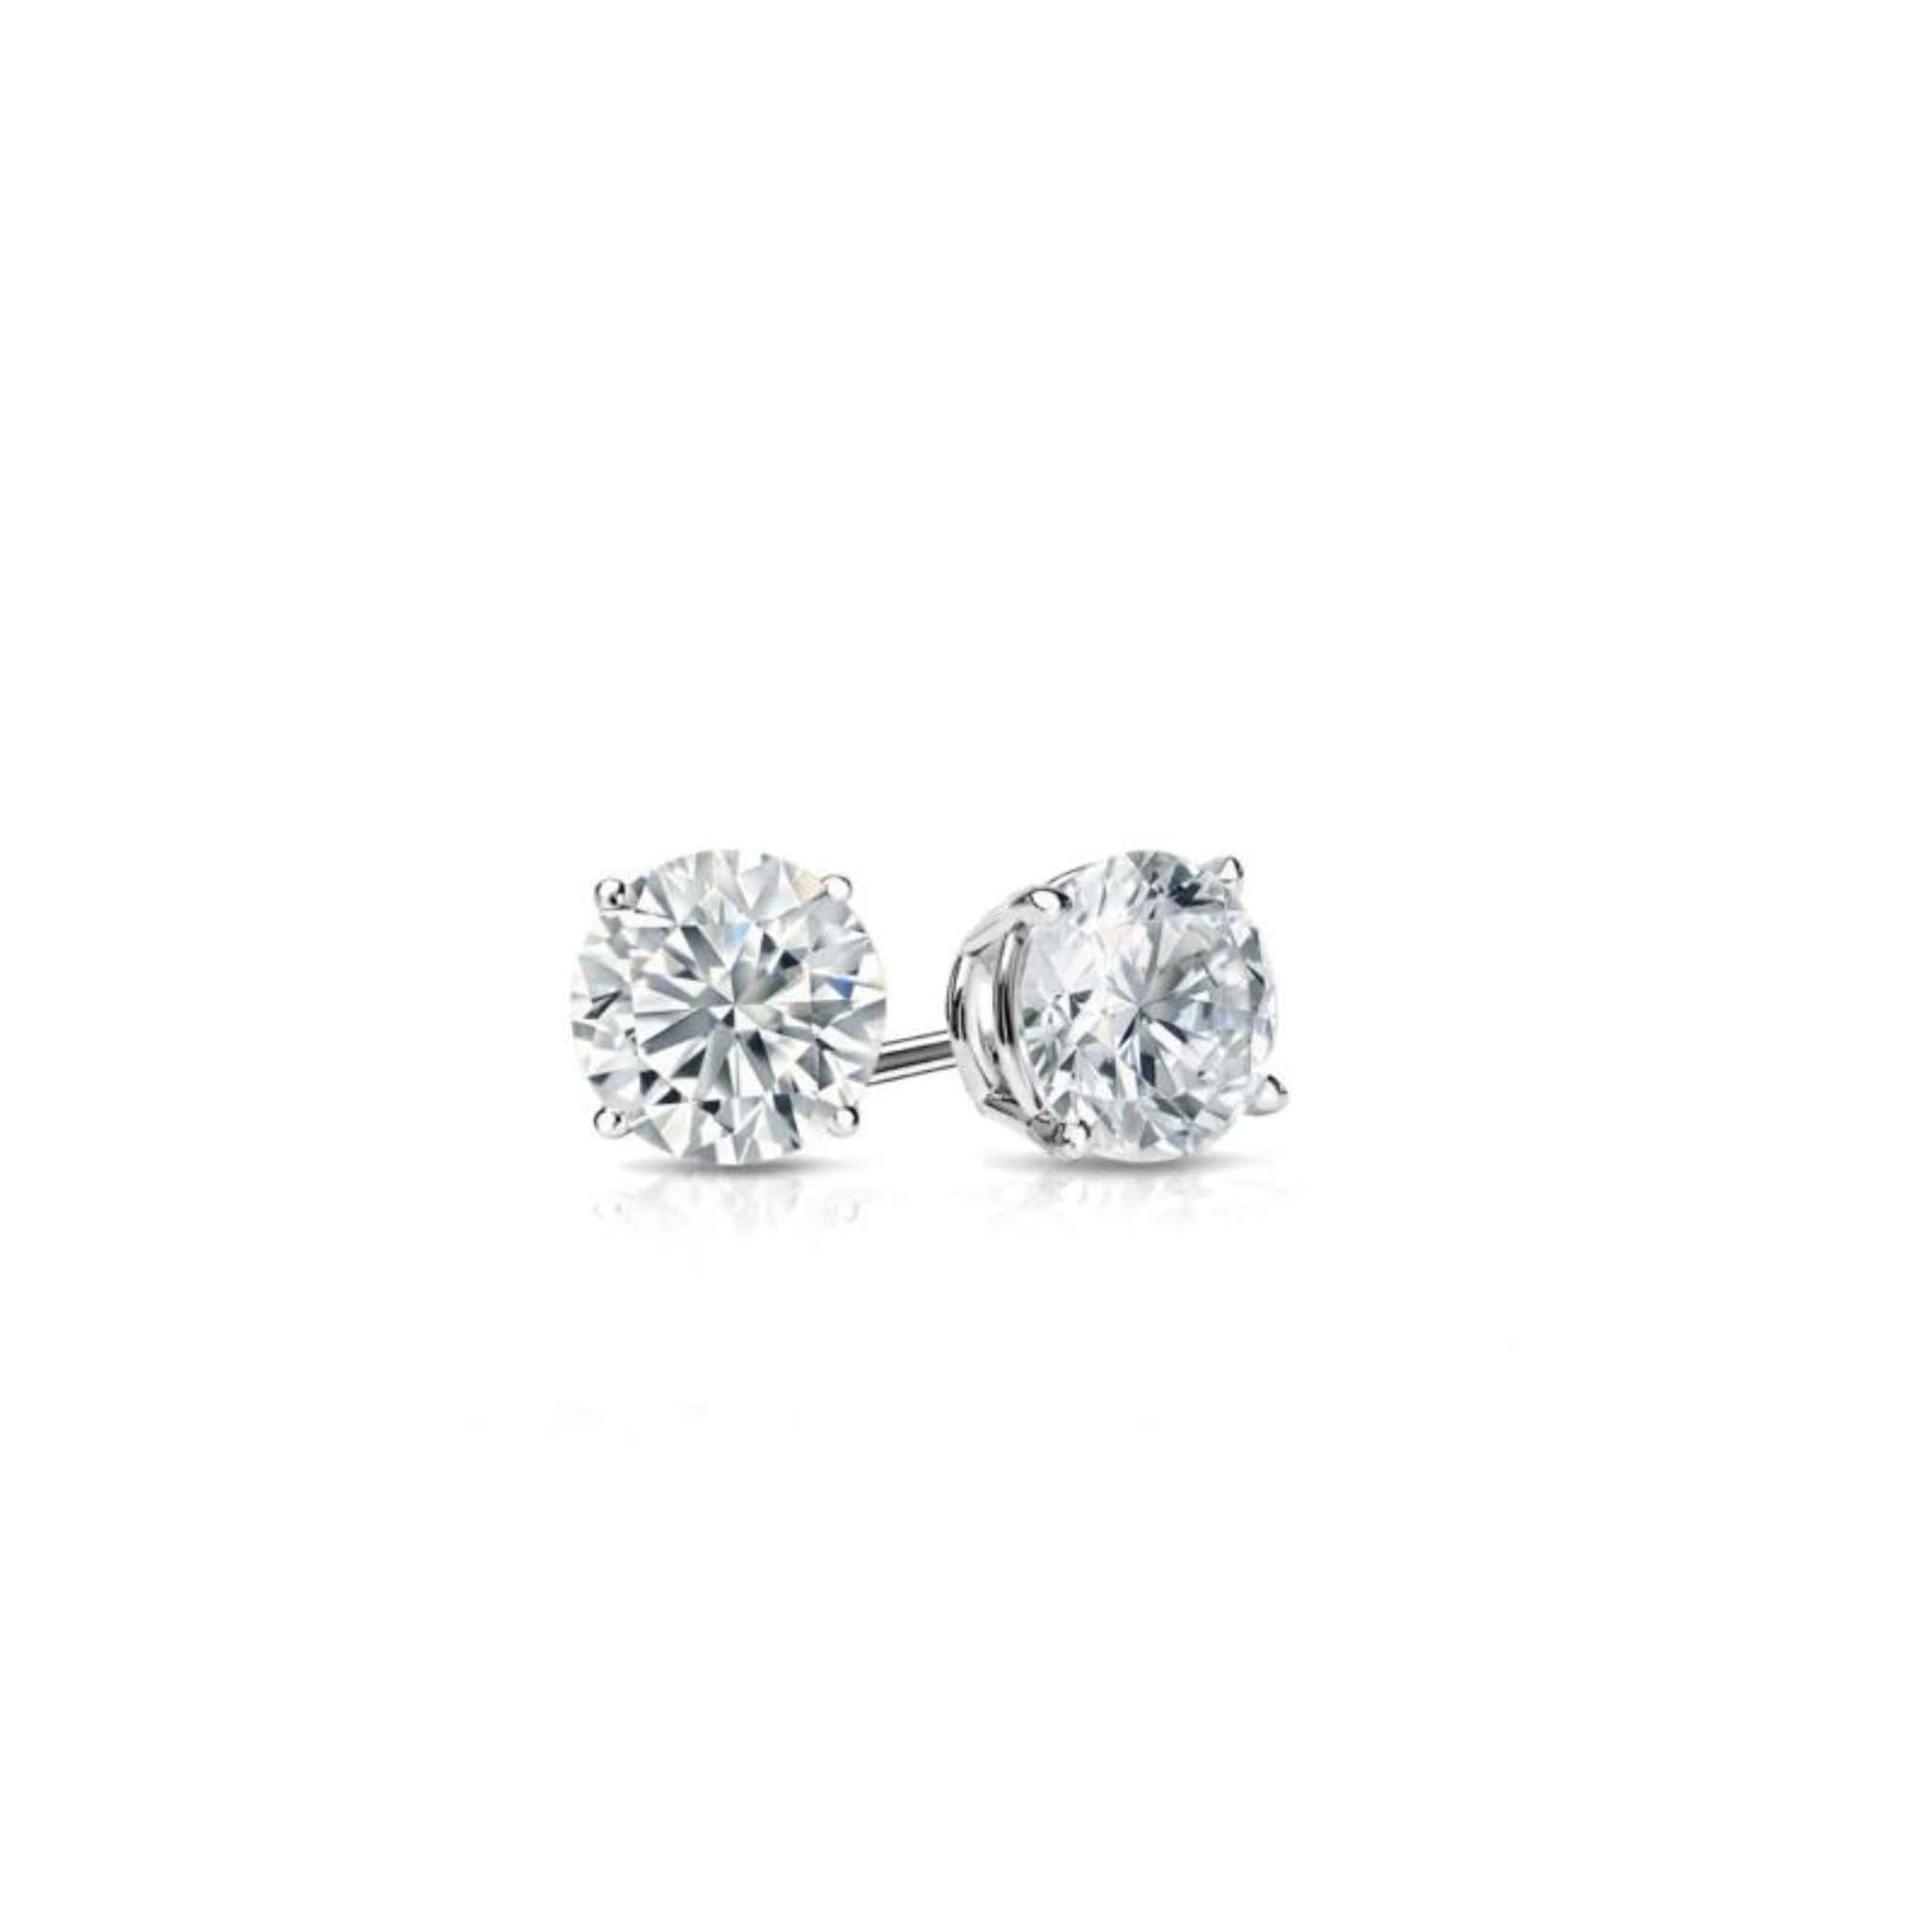 14K White Gold Diamond Stud Earrings (0.52 CT. TW.) at Arman's Jewellers